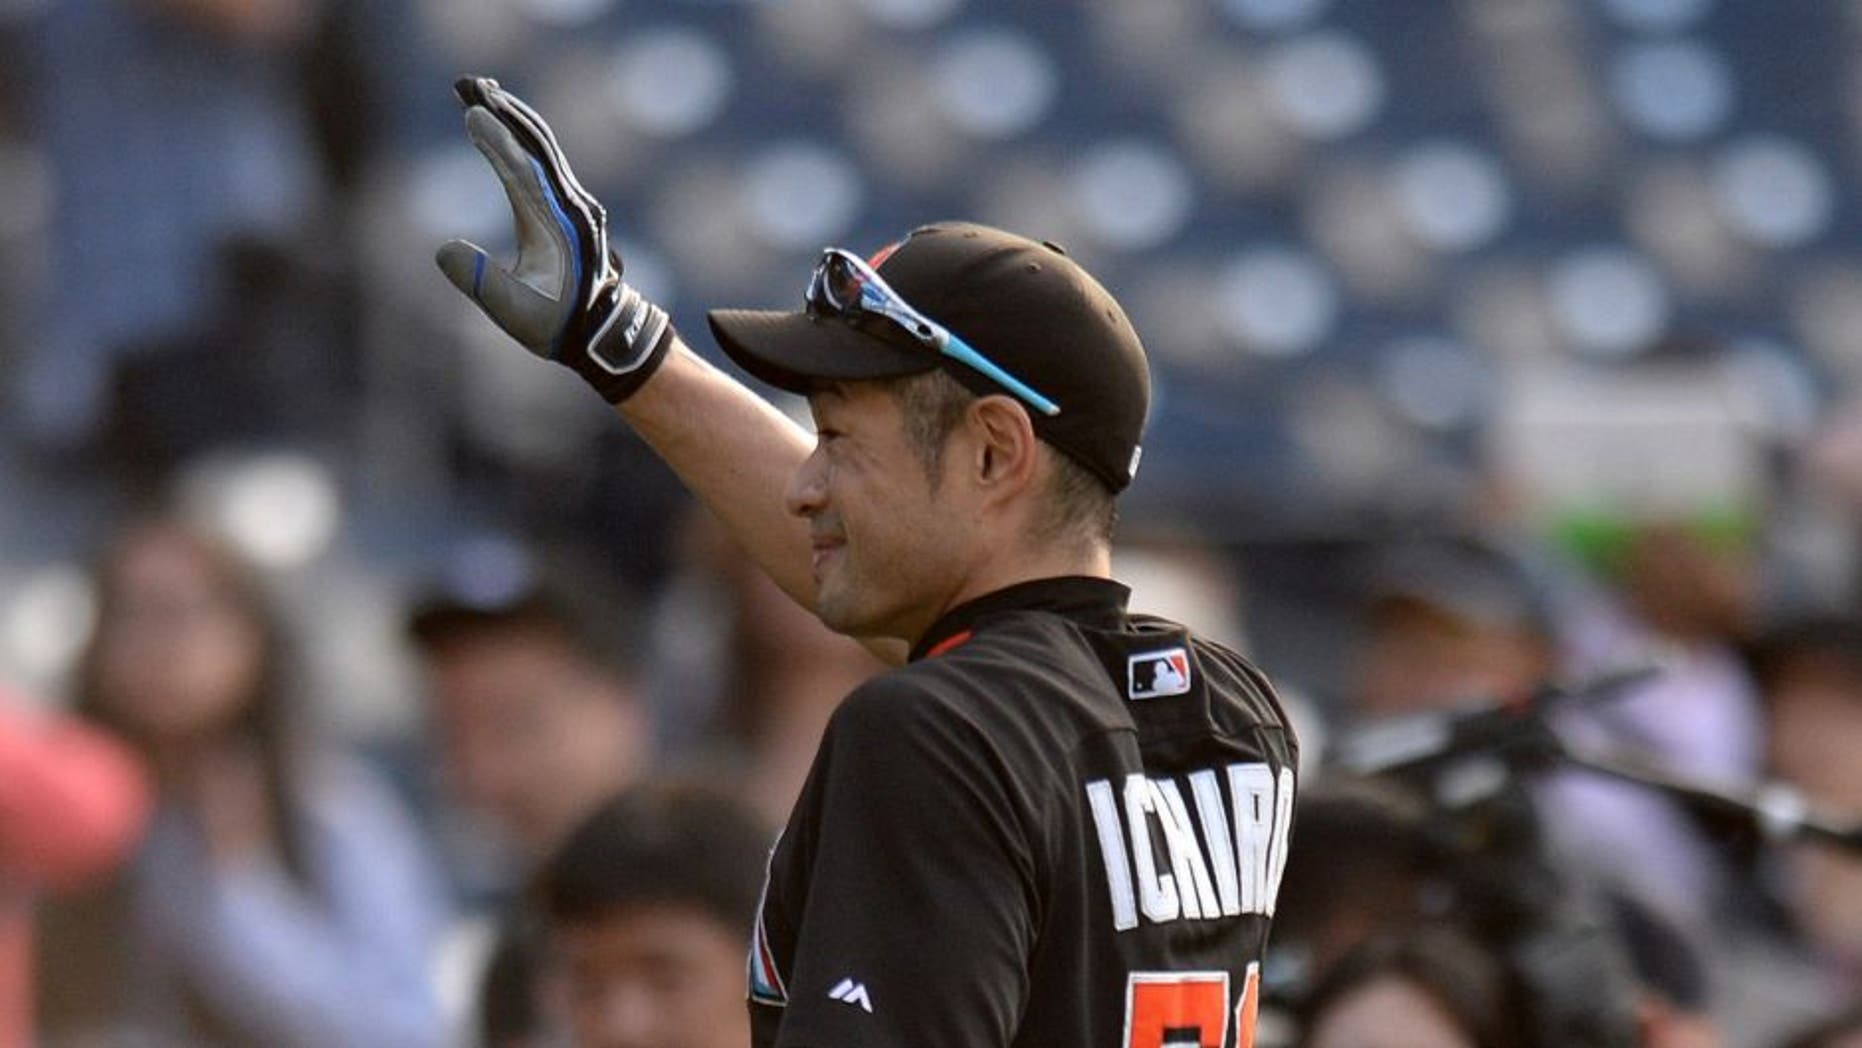 Jun 14, 2016; San Diego, CA, USA; Miami Marlins center fielder Ichiro Suzuki (51) waves to the crowd prior to the game against the San Diego Padres at Petco Park. Mandatory Credit: Jake Roth-USA TODAY Sports